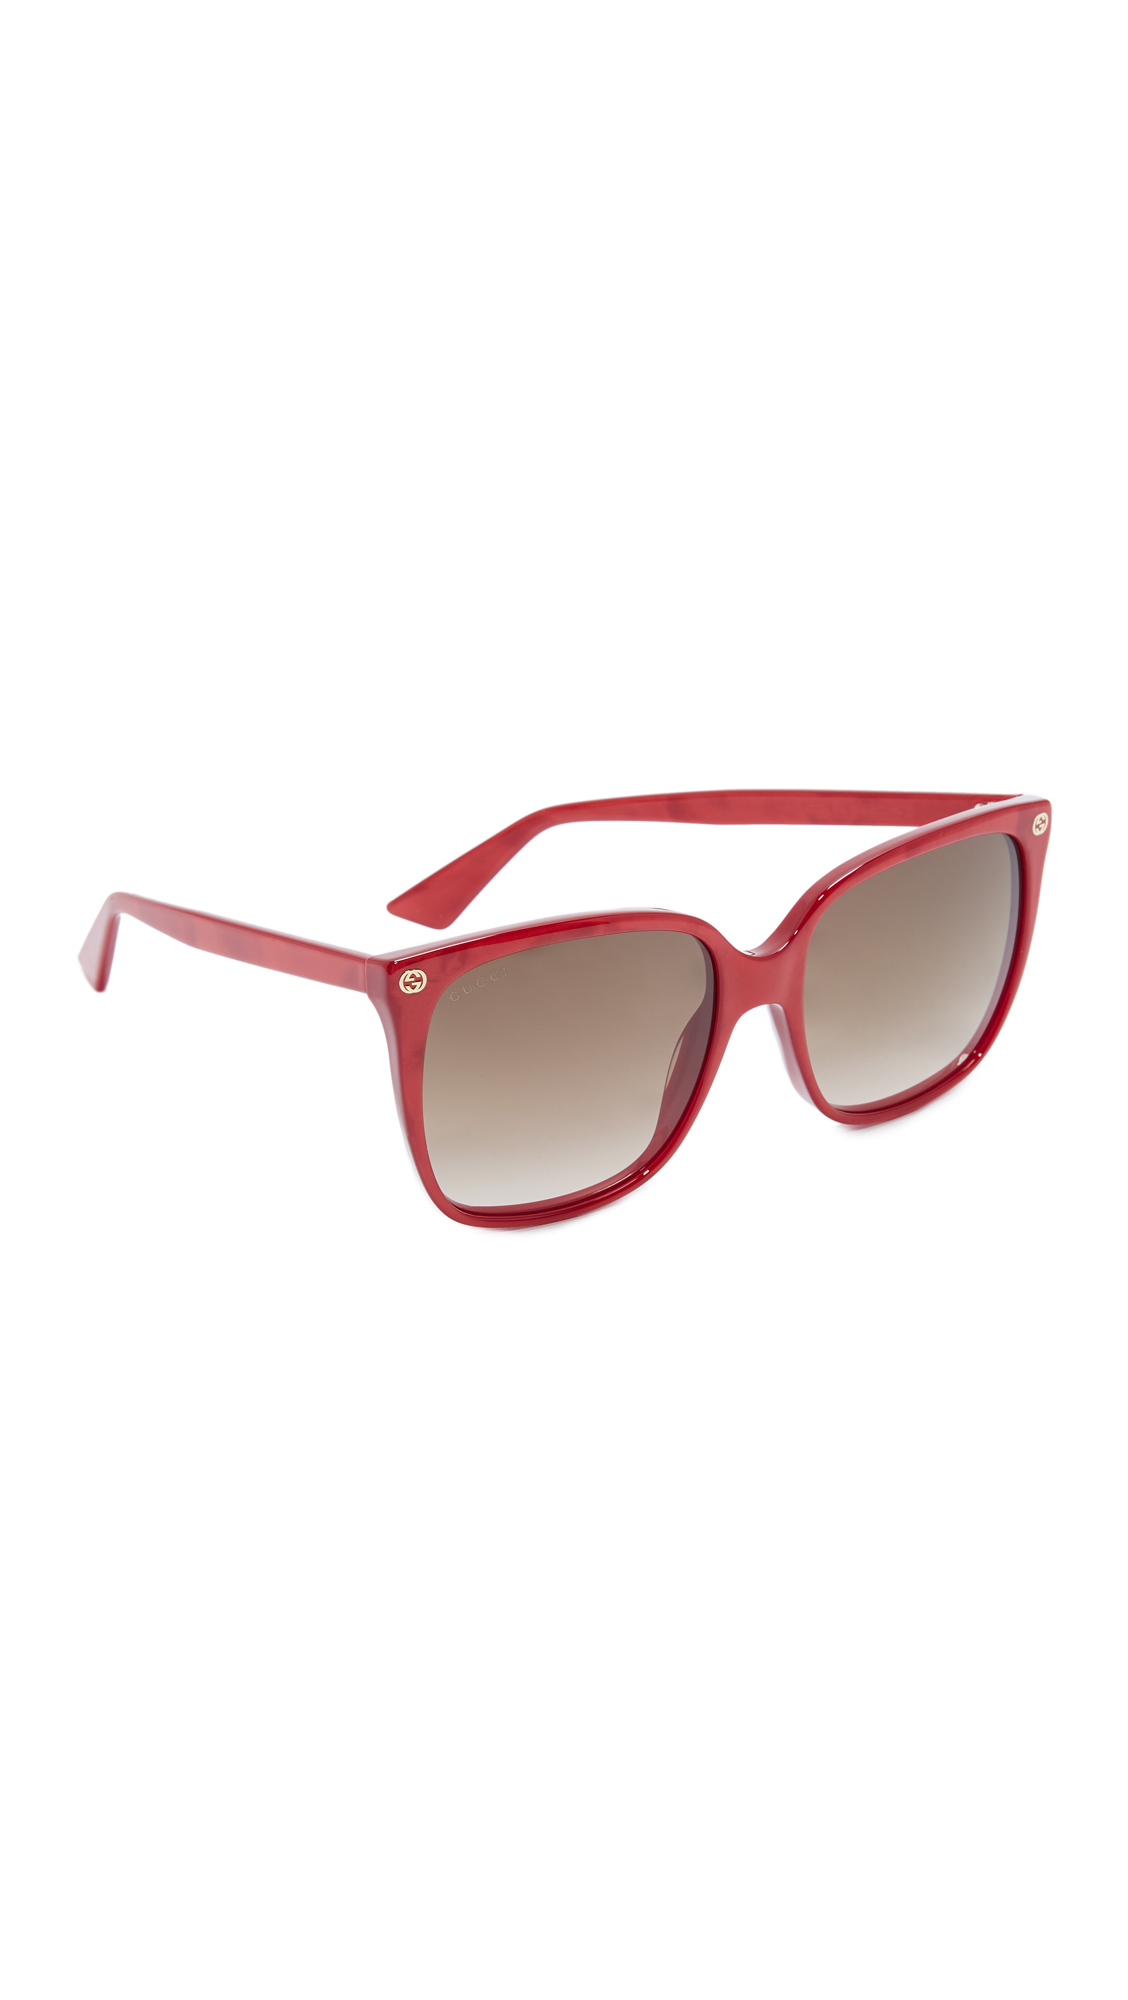 Gucci Lightness Square Sunglasses - Pearled Red/Brown